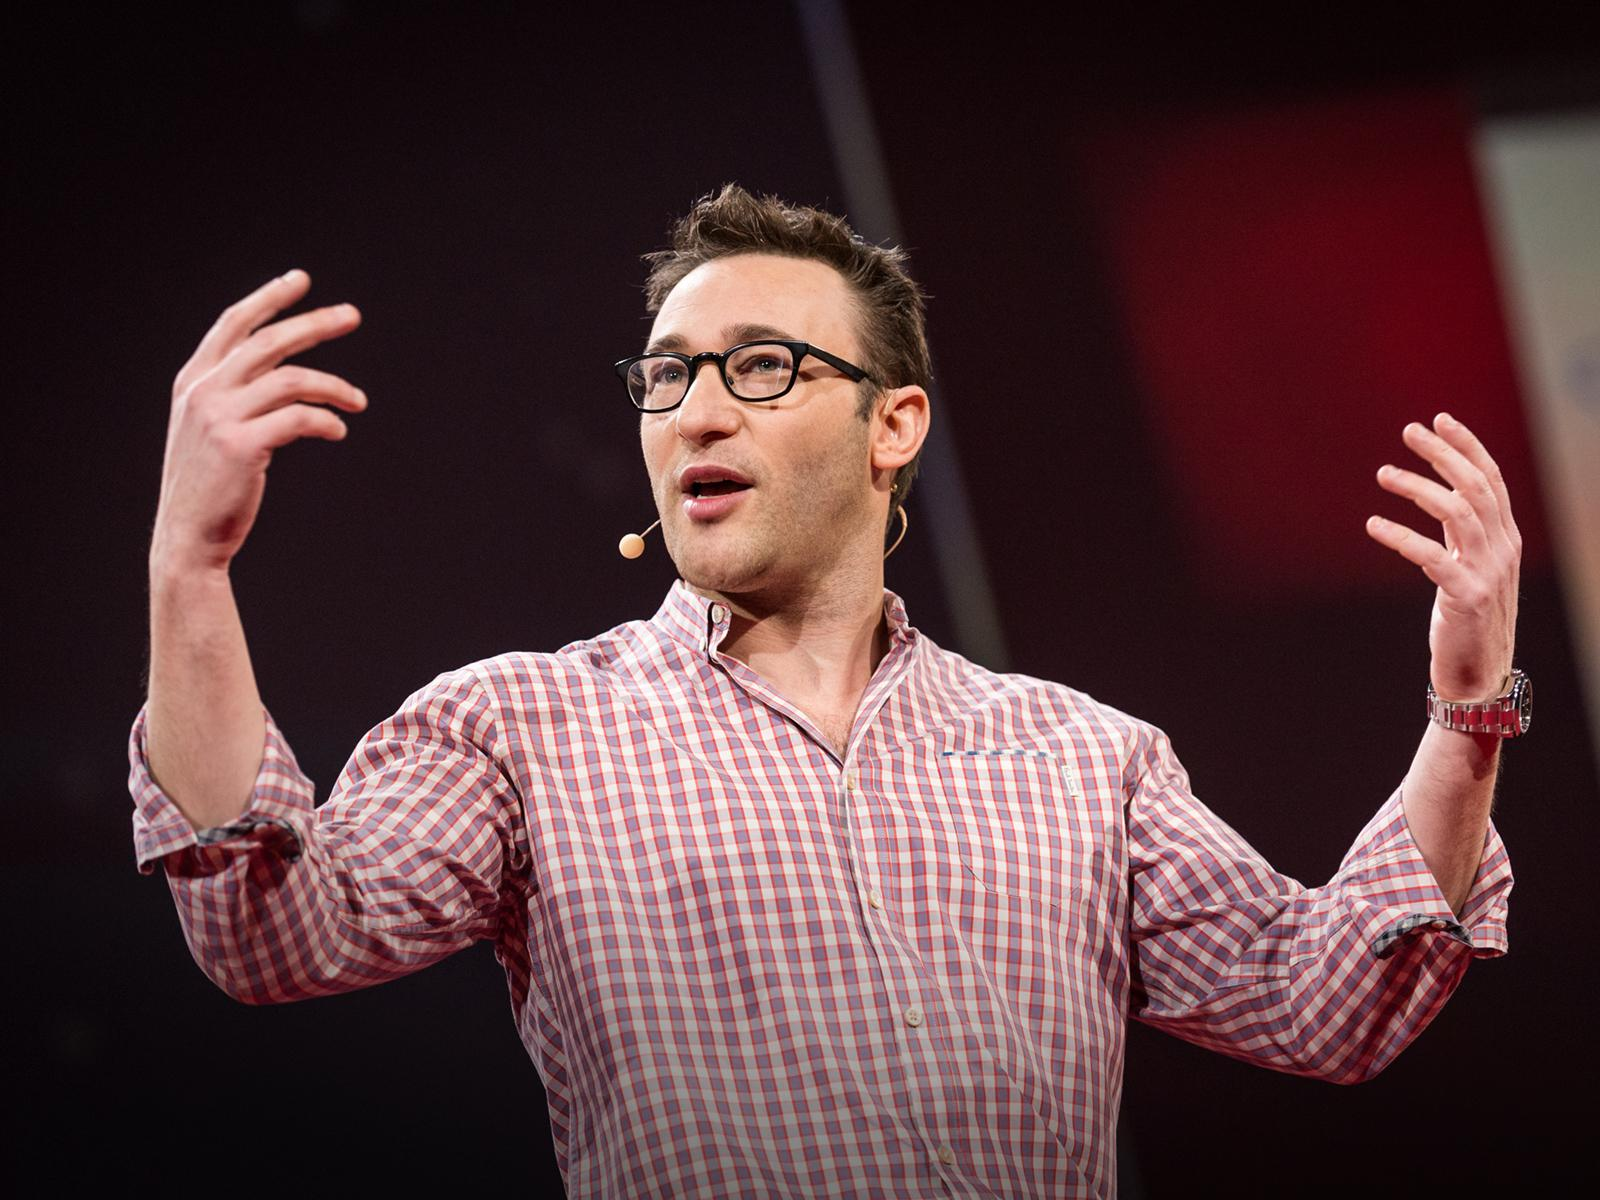 simon sinek | Search Results | TED.com